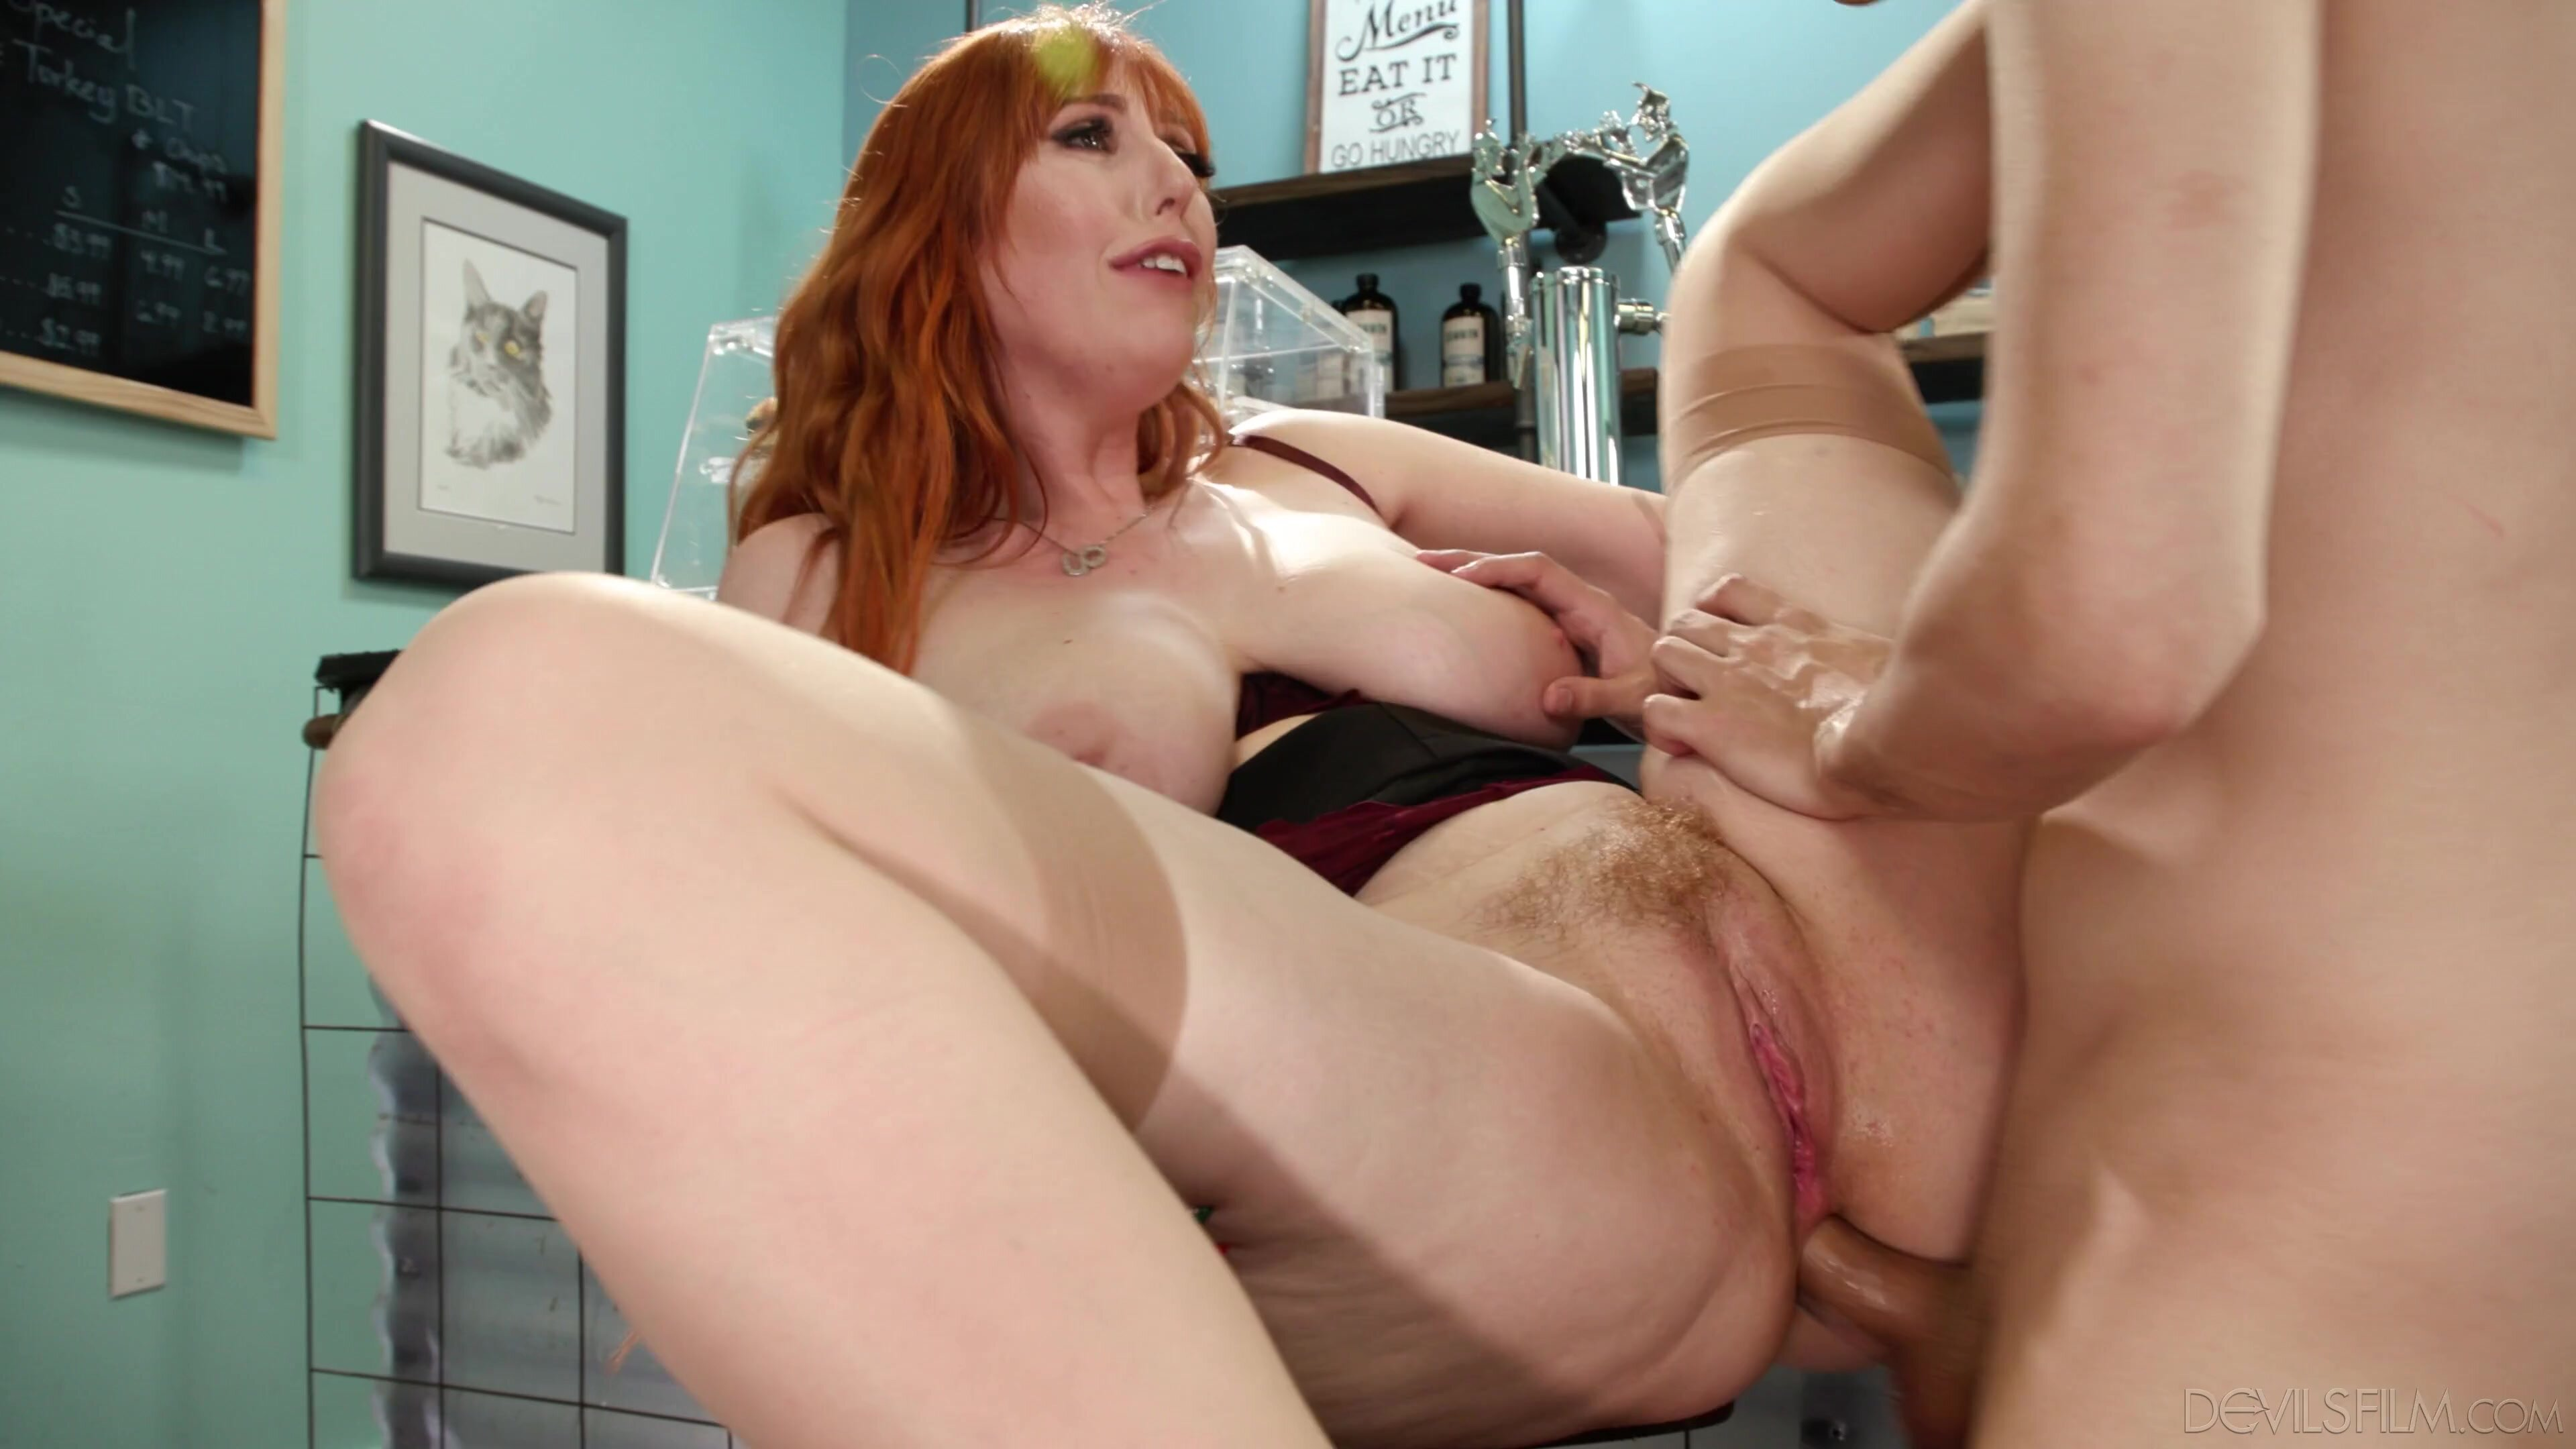 Stepmom Likes It Up The Ass 2